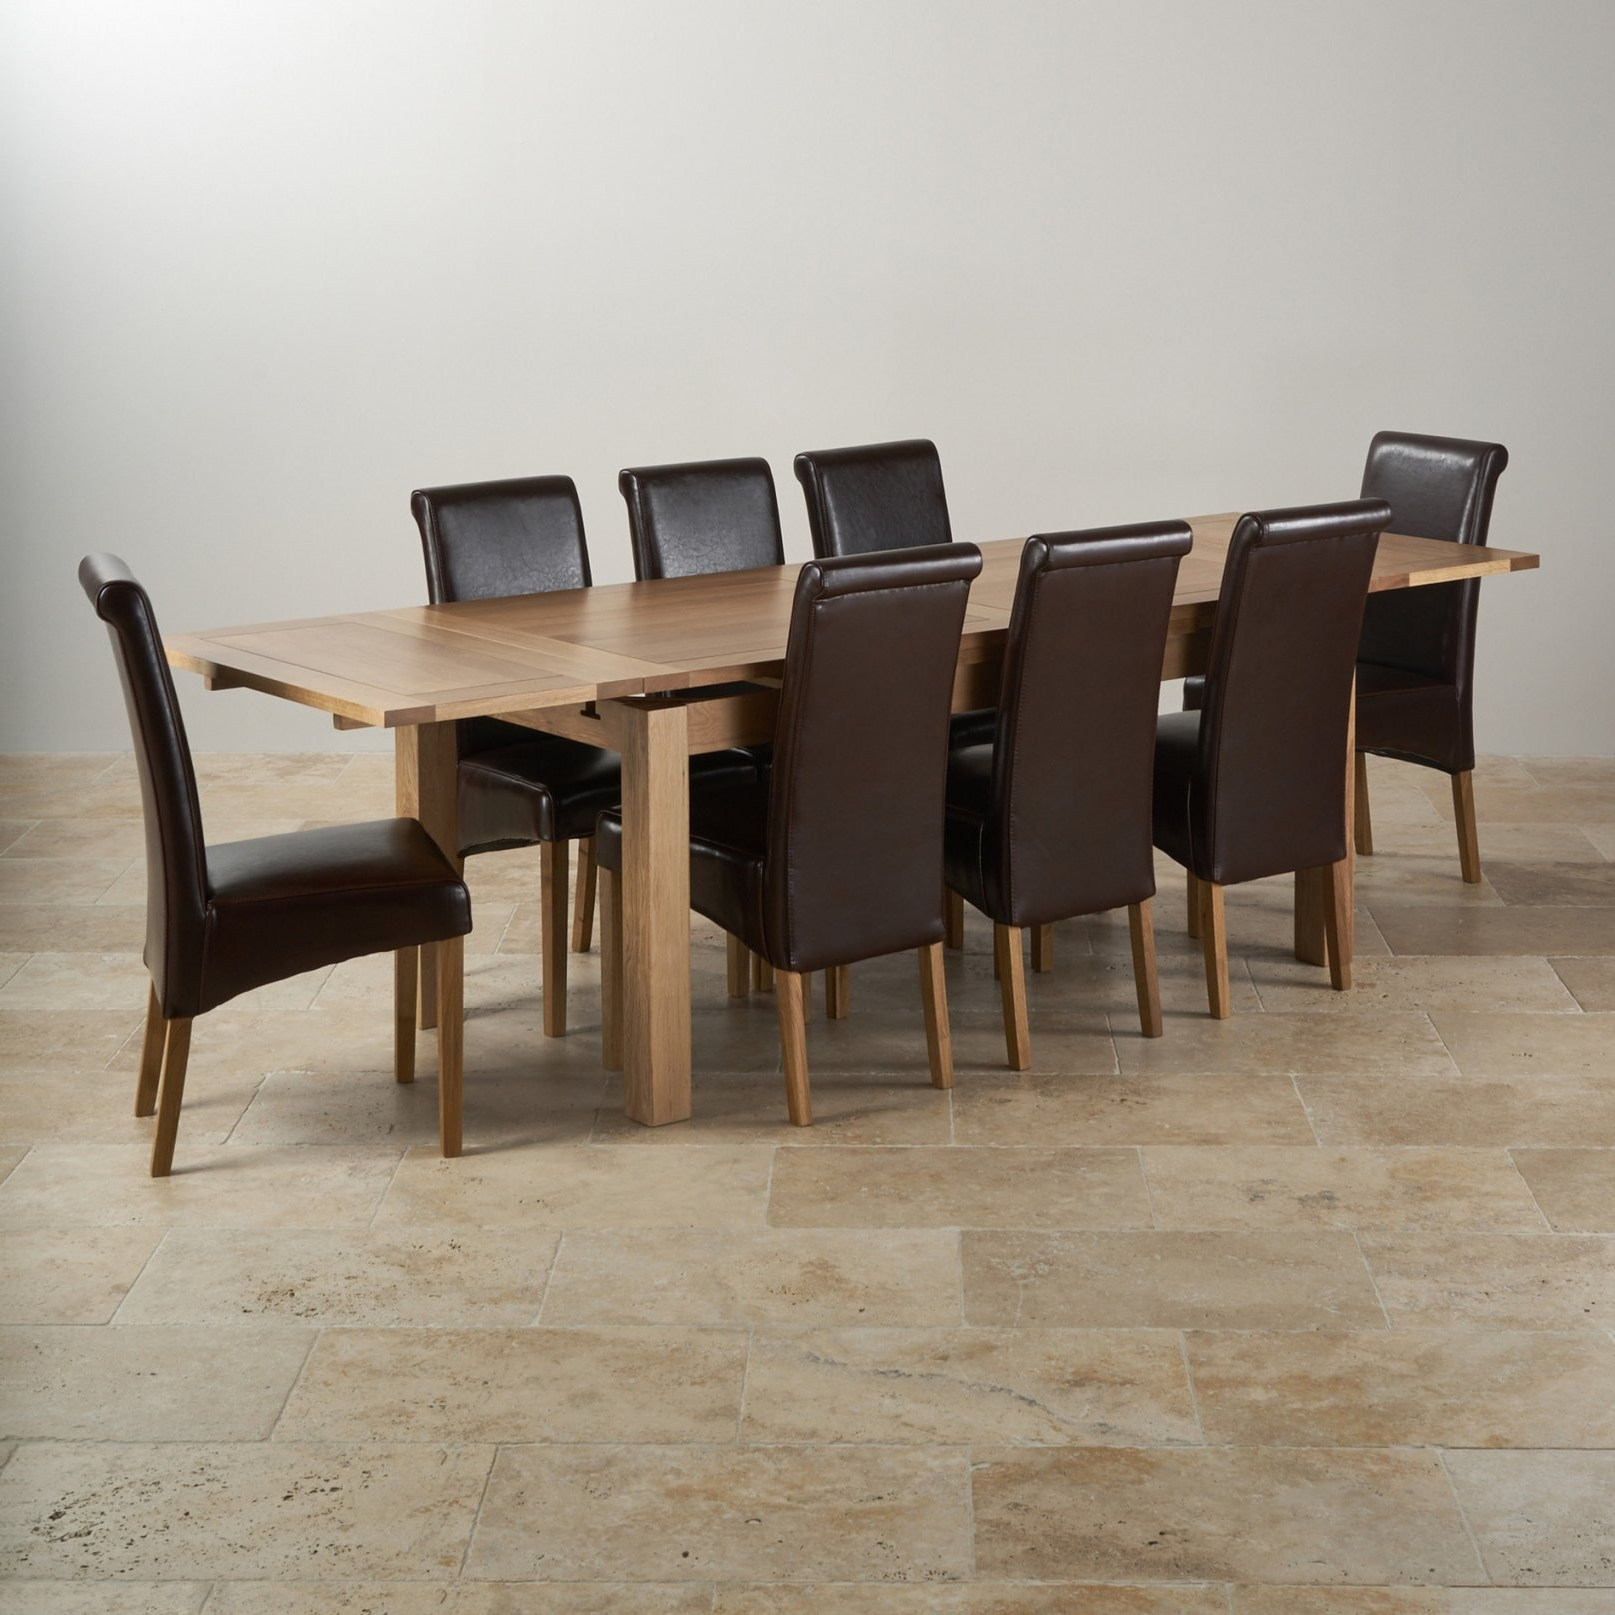 Sophisticated Dorset Oak Dining Set 6Ft Table With 8 Chairs For For With Regard To Preferred Oak Dining Tables And 8 Chairs (View 16 of 25)